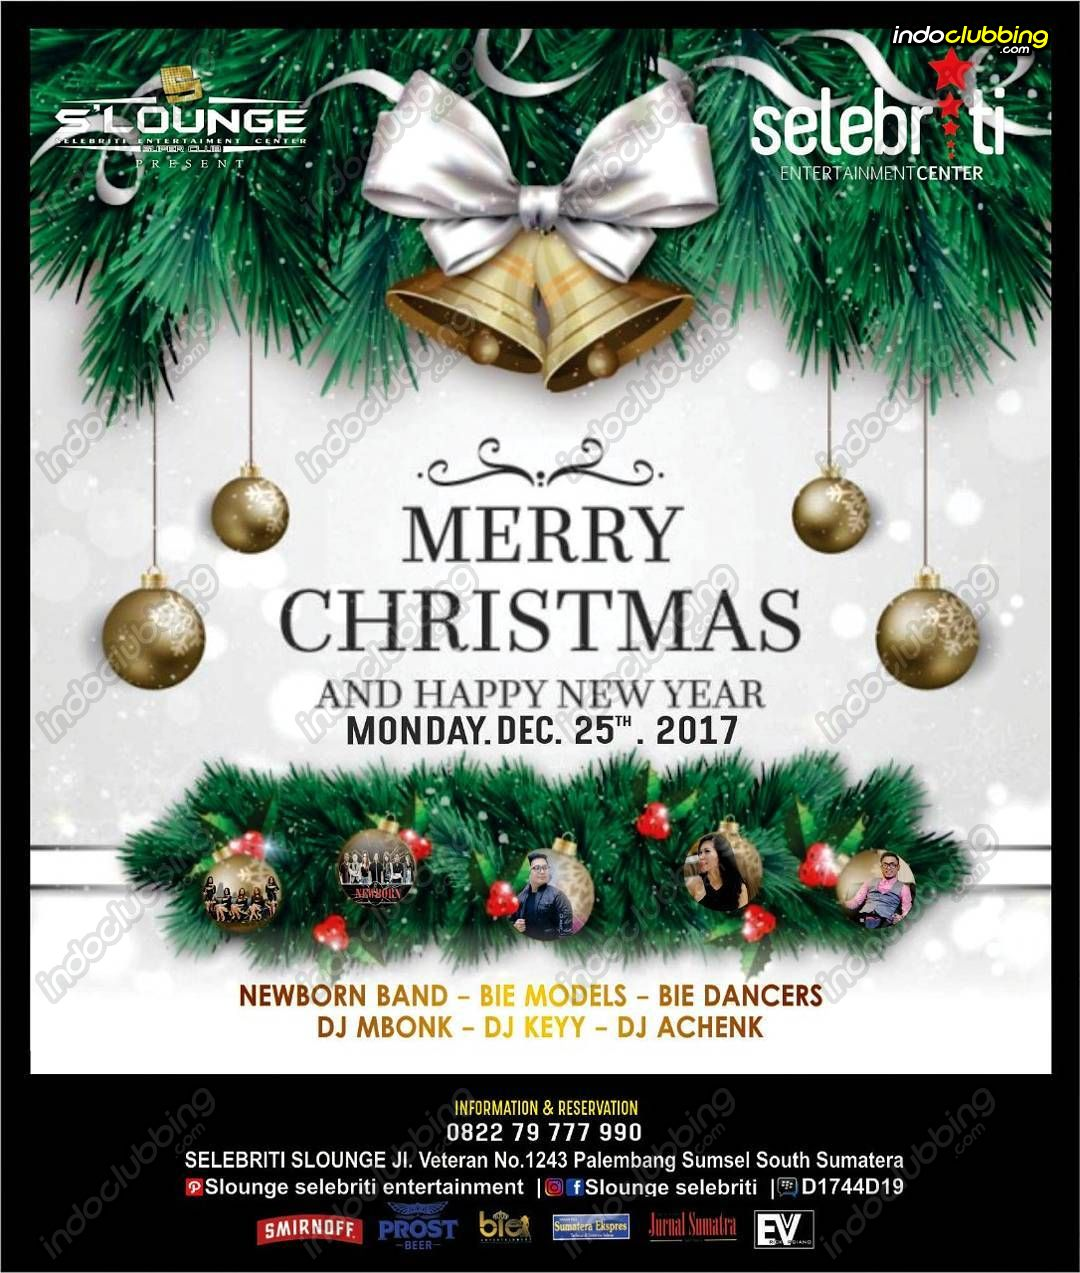 event : merry christmas @ s'lounge (palembang) - mon 25 dec 2017